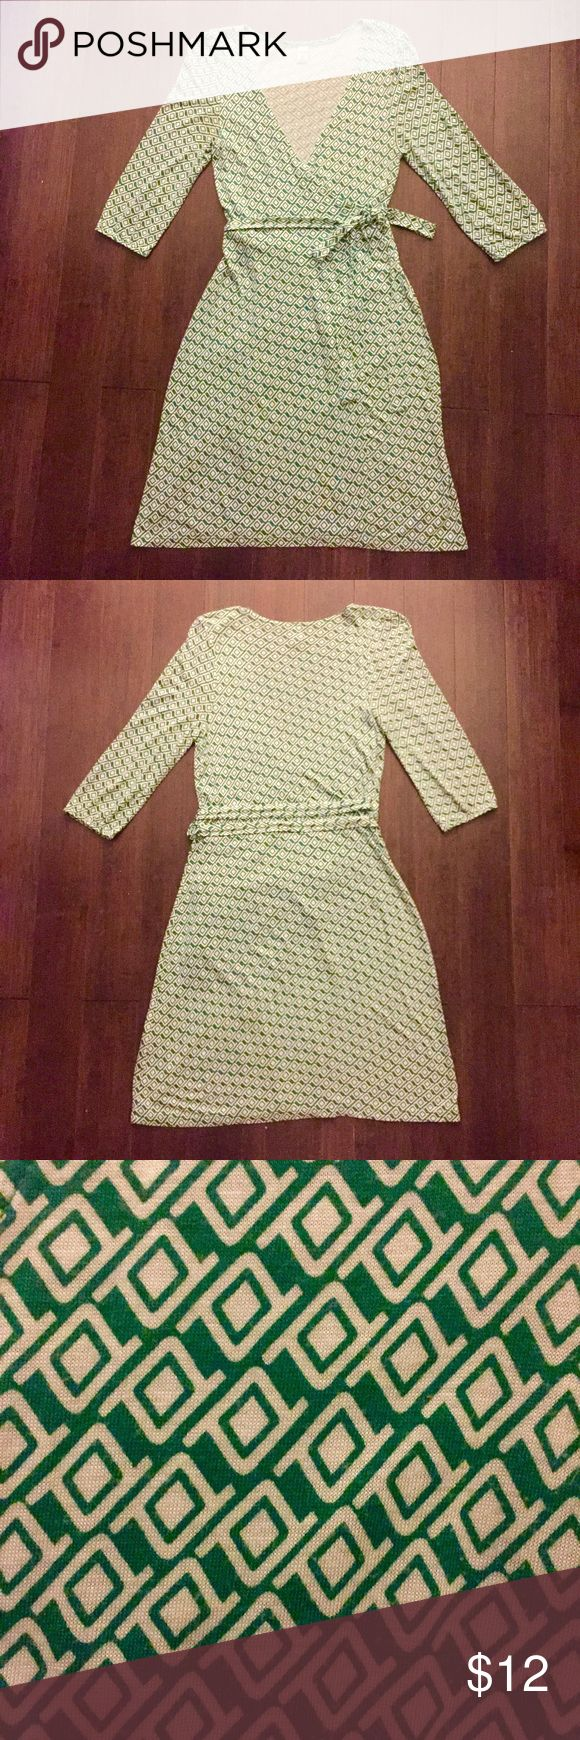 "Green & White Pattern 3/4-Sleeve Wrap Dress Old Navy Green and White Patterned 3/4-Sleeve Wrap Dress  Hits a little below the knee for me. 37.5"" top to bottom, 17"" sleeves, 14"" armpit to armpit, 22"" across the bottom. 100% rayon.   👍Reasonable offers welcome!😄 💐20% off bundles but can increase with the more you bundle!💐 🚫No returns or trades please!😝 🚭Smoke- & pet-free home🐶 Old Navy Dresses"